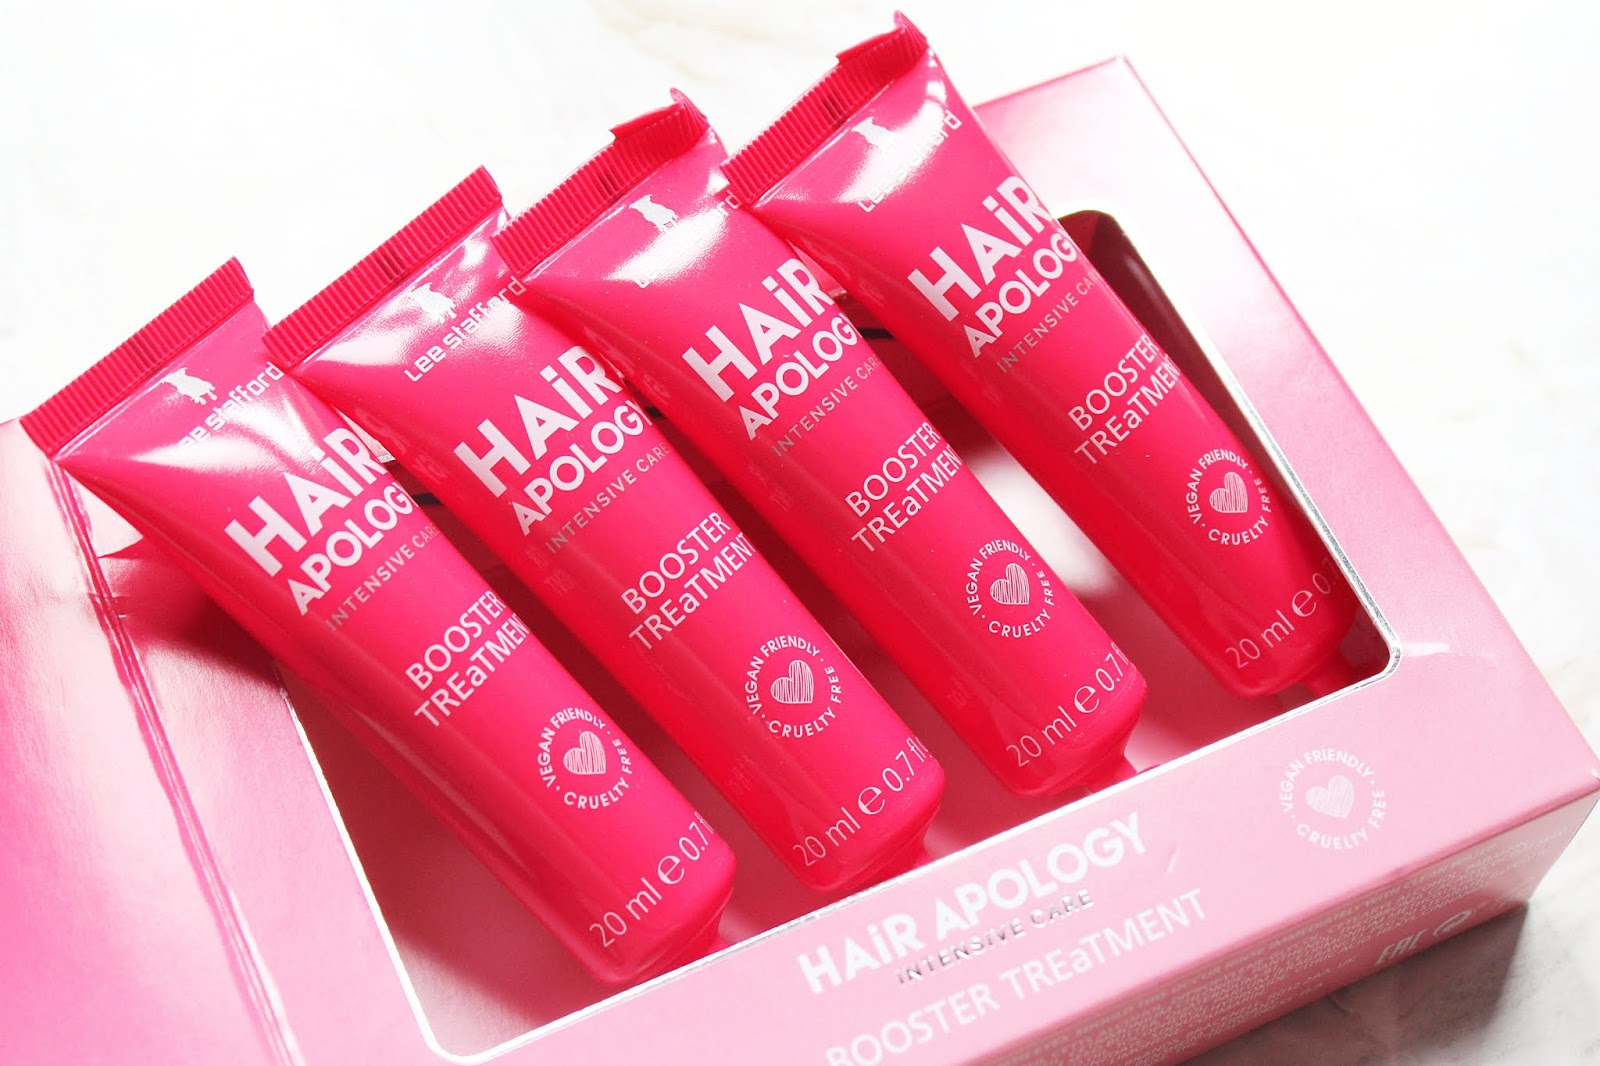 Lee Stafford Hair Apology Booster Treatment Review